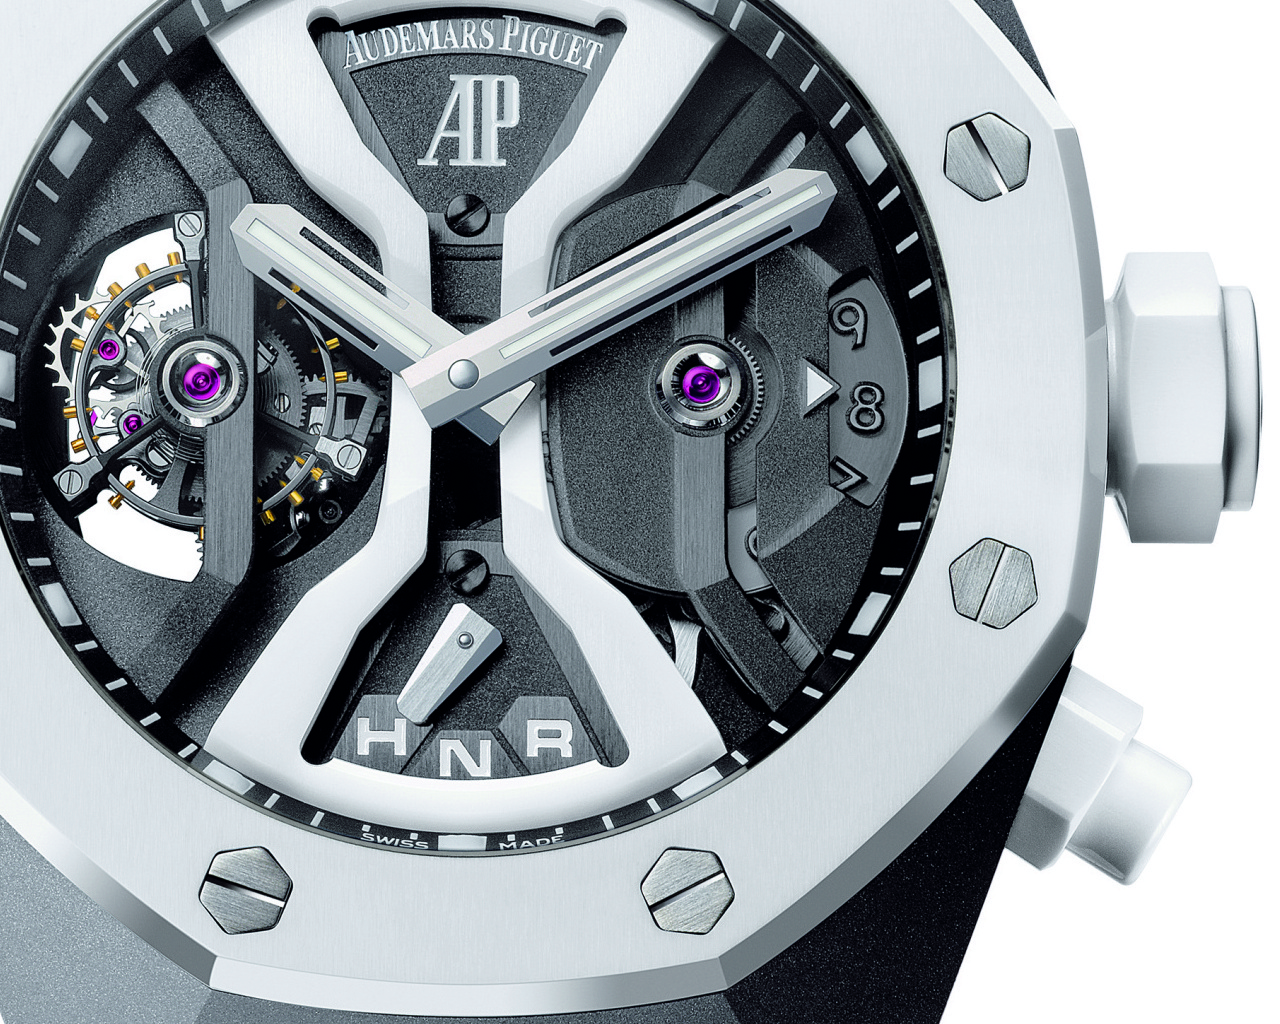 anteprima-sihh-2014-audemars-piguet-royal-oak-concept-gmt-tourbillon-0-100_3